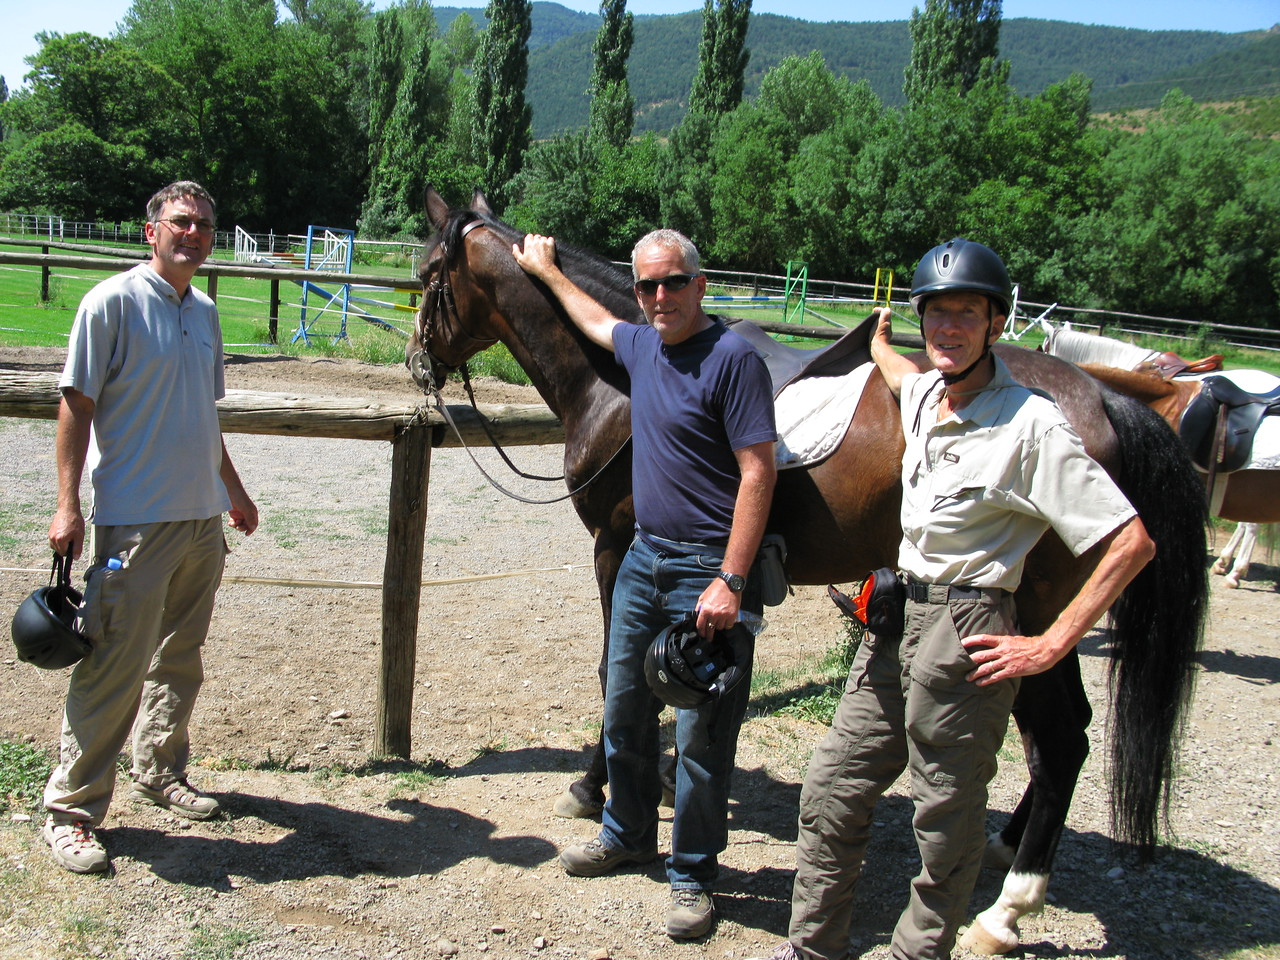 Gareth, Edward and Vic after an adventurous 2 hour mountain horse trek